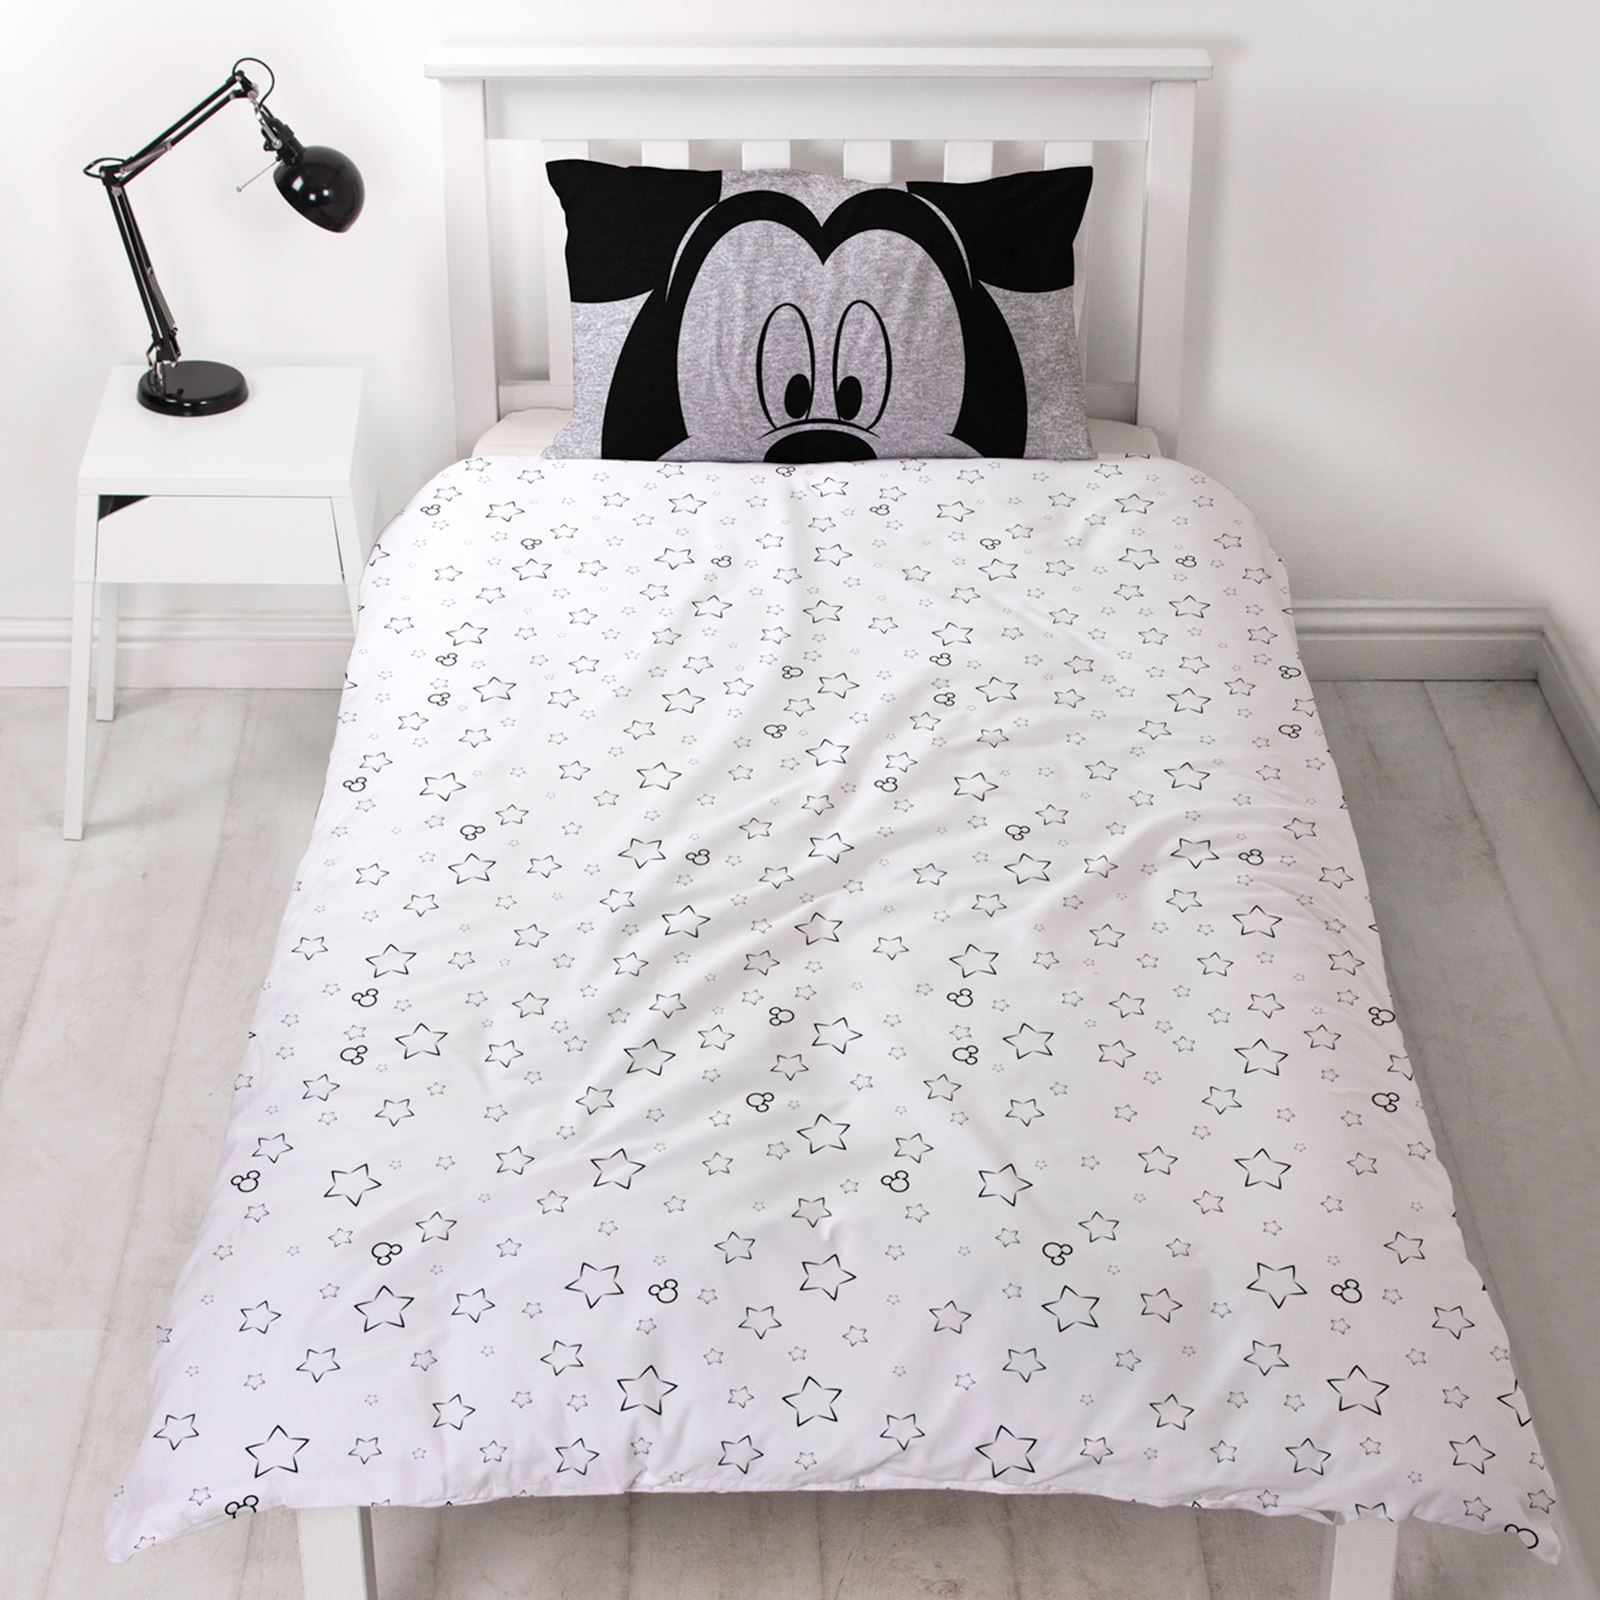 Disney-Mickey-Minnie-mouse-fundas-nordicas-SINGLE-doble-Ropa-De-Cama-Reversible miniatura 8